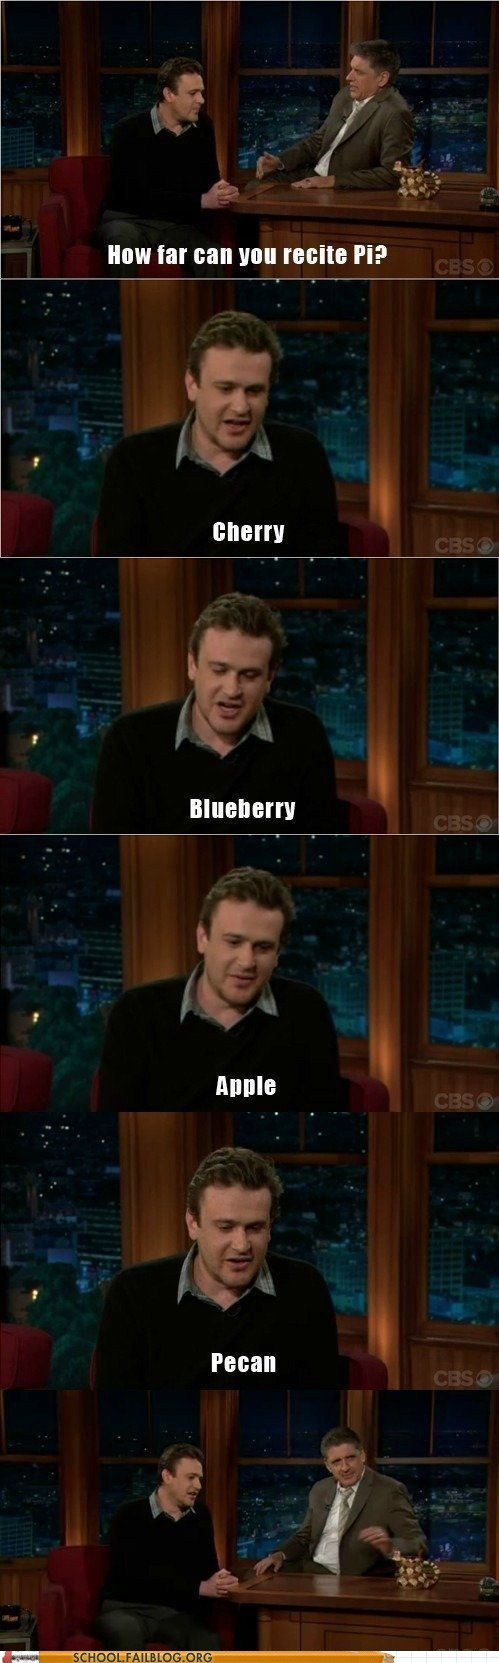 mmm math pi pies jason segel - 6682340096